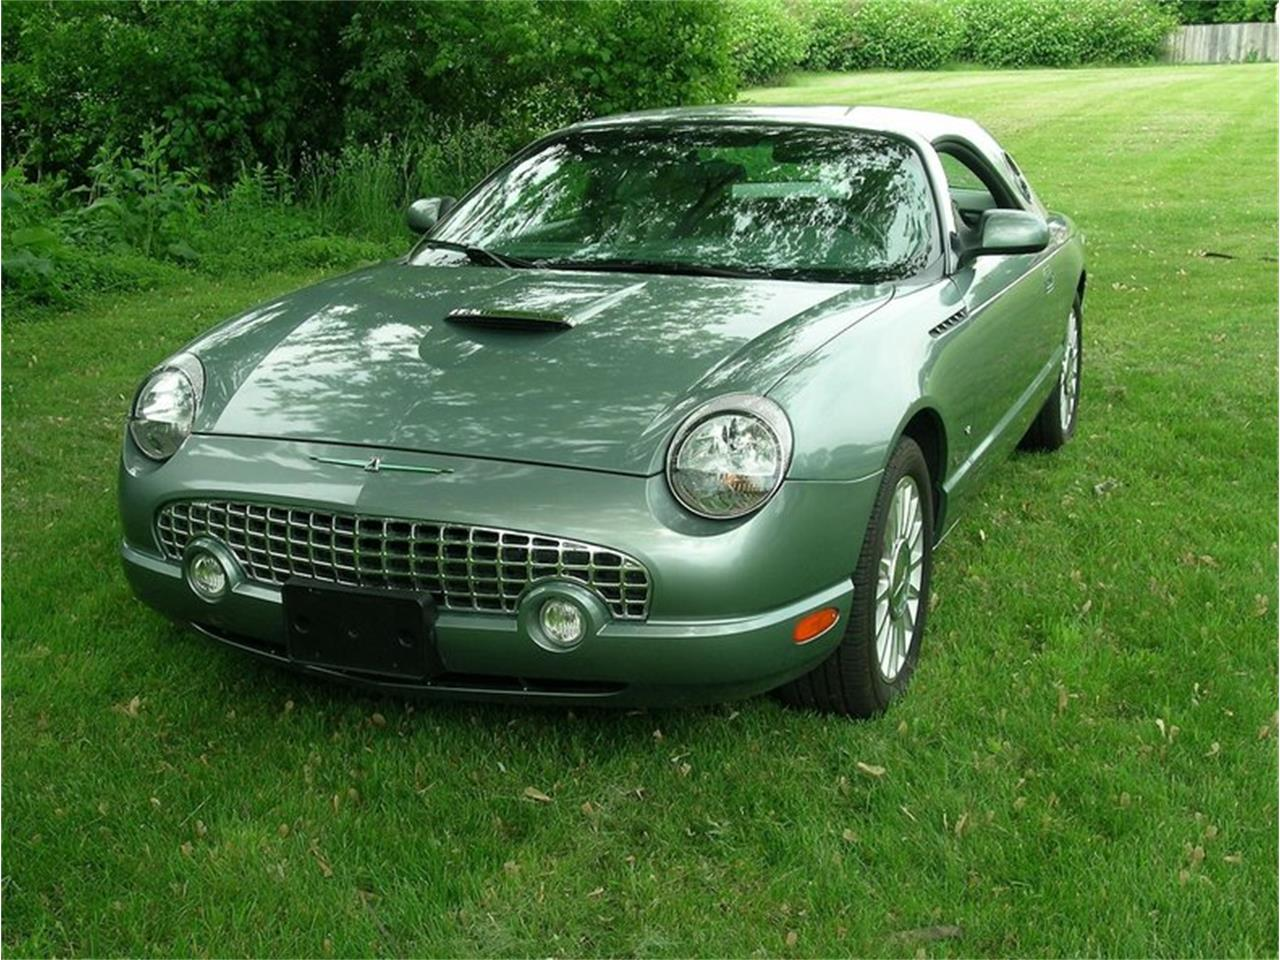 2004 Ford Thunderbird for sale in Saratoga Springs, NY – photo 2